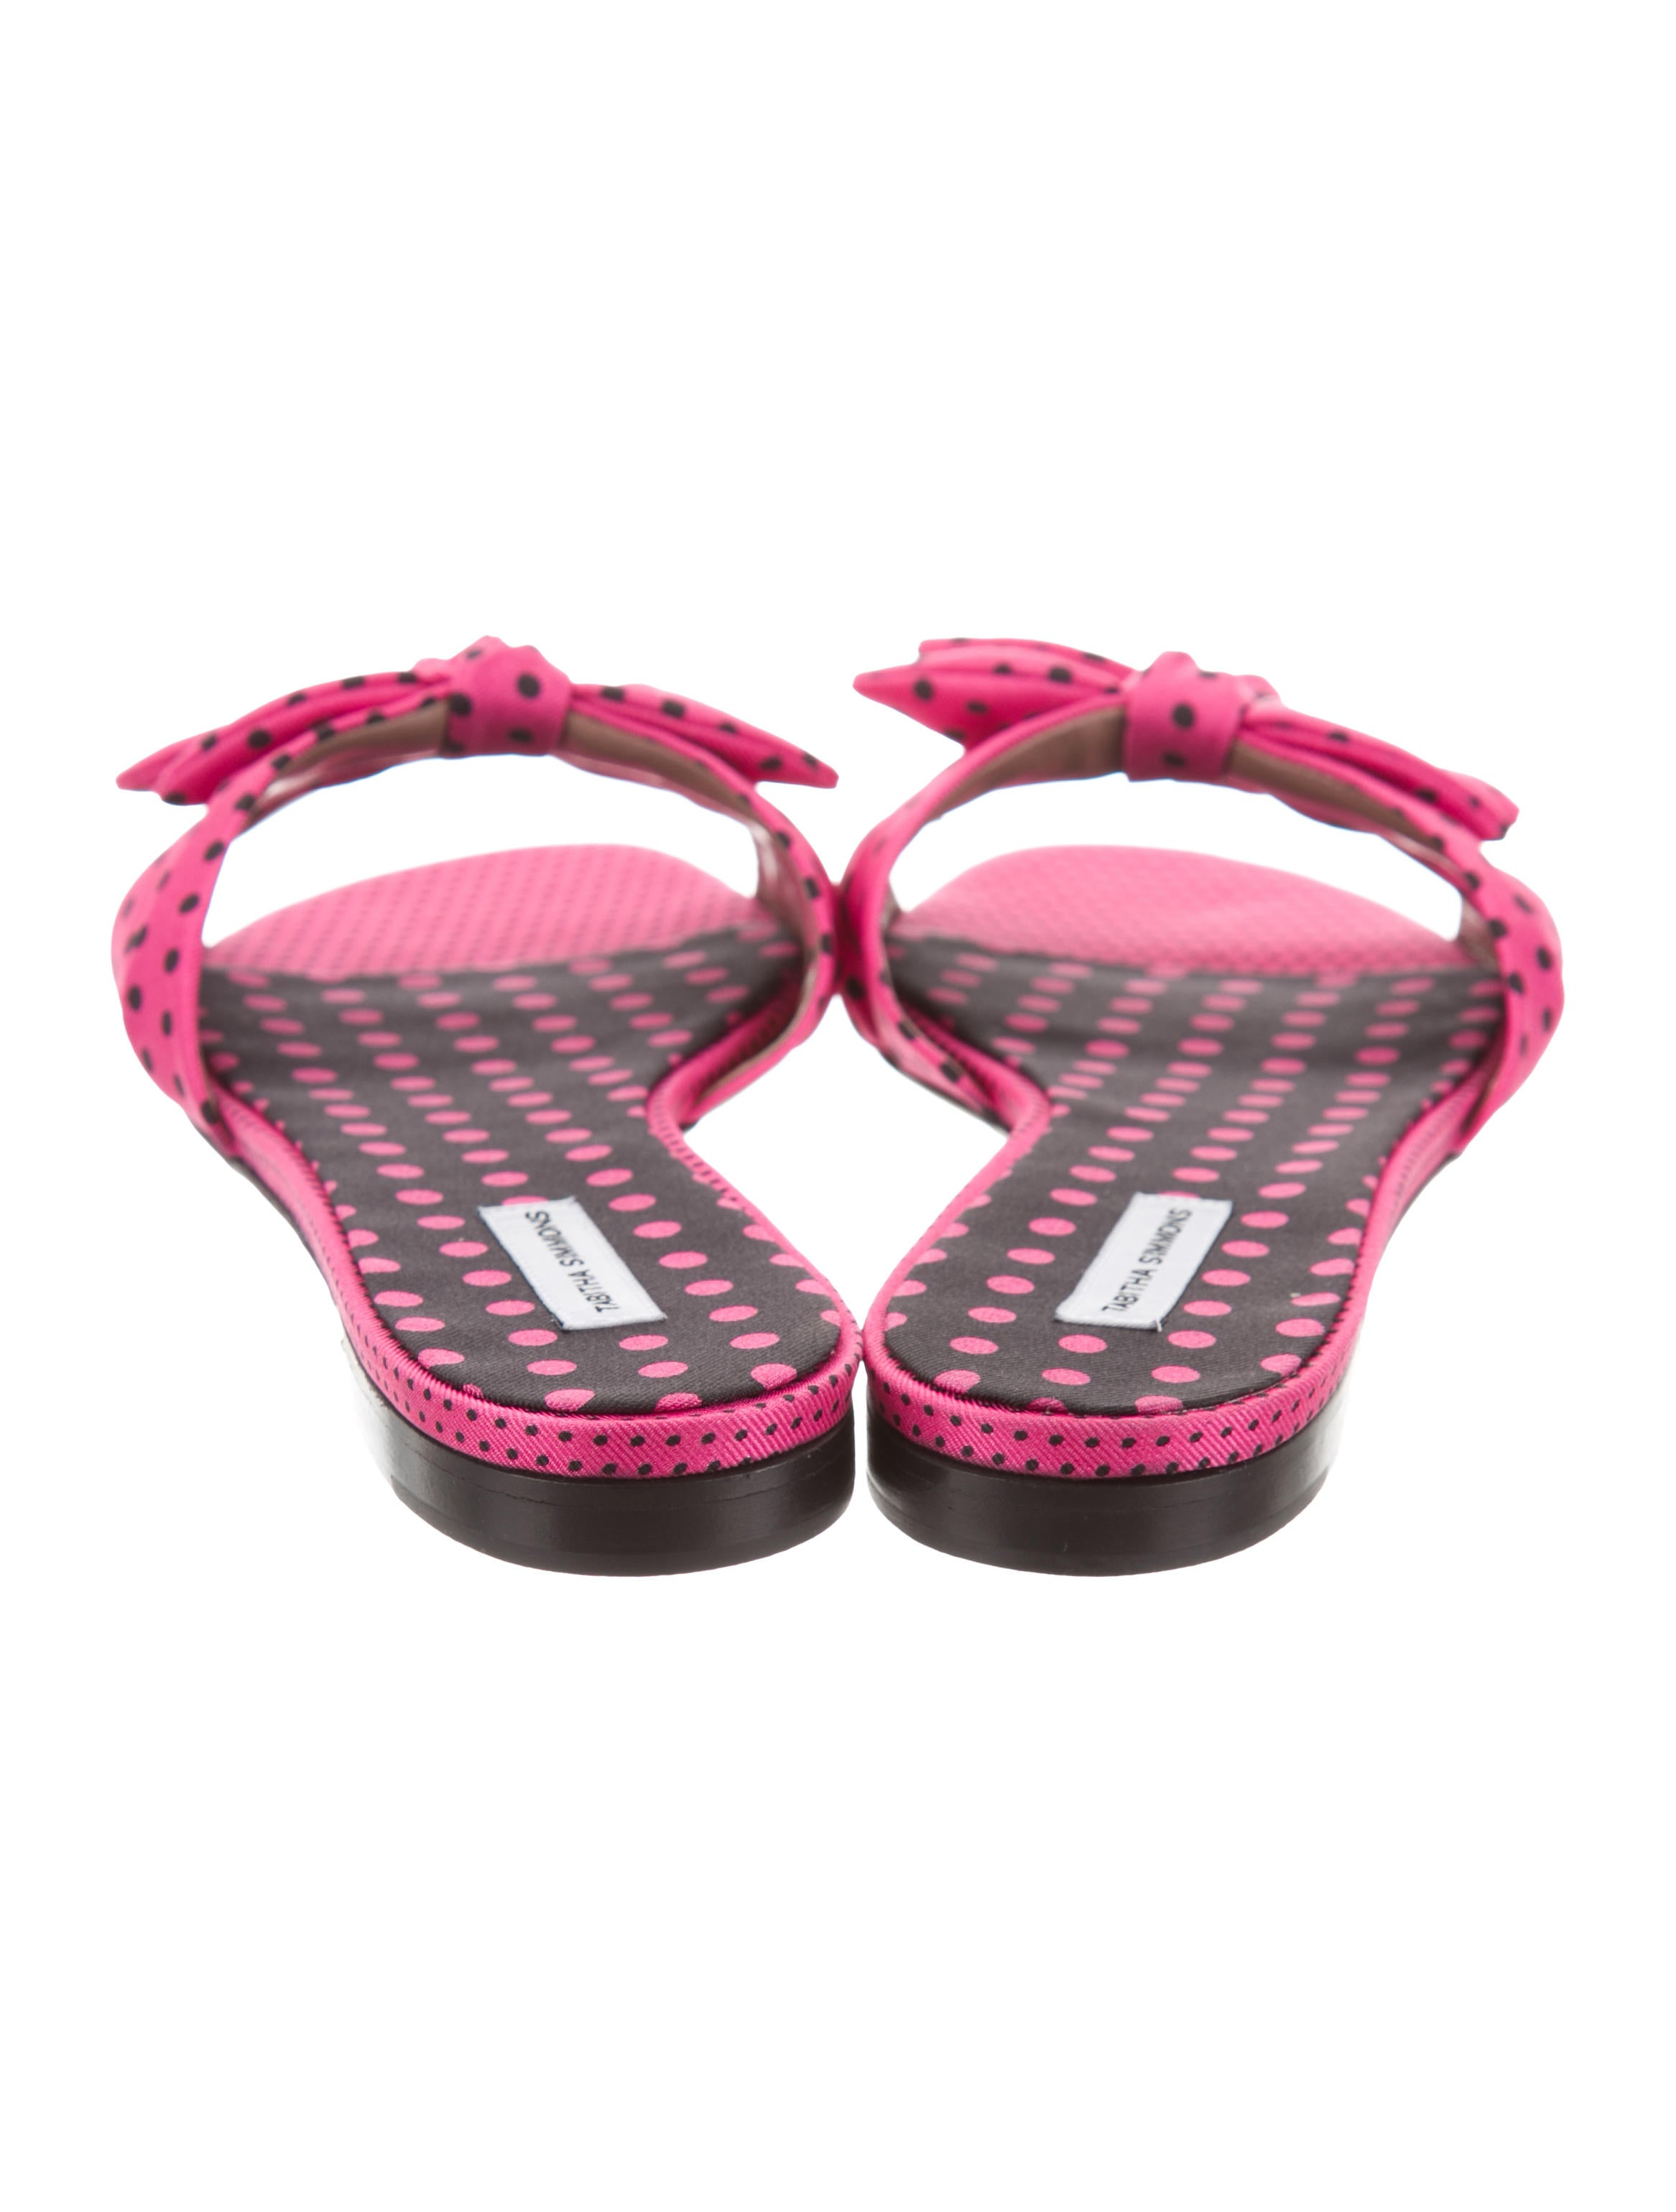 cheap sale 2014 newest excellent cheap price Tabitha Simmons Cleo Polka Dot Sandals w/ Tags newest for sale outlet finishline NQgZfcxQ3